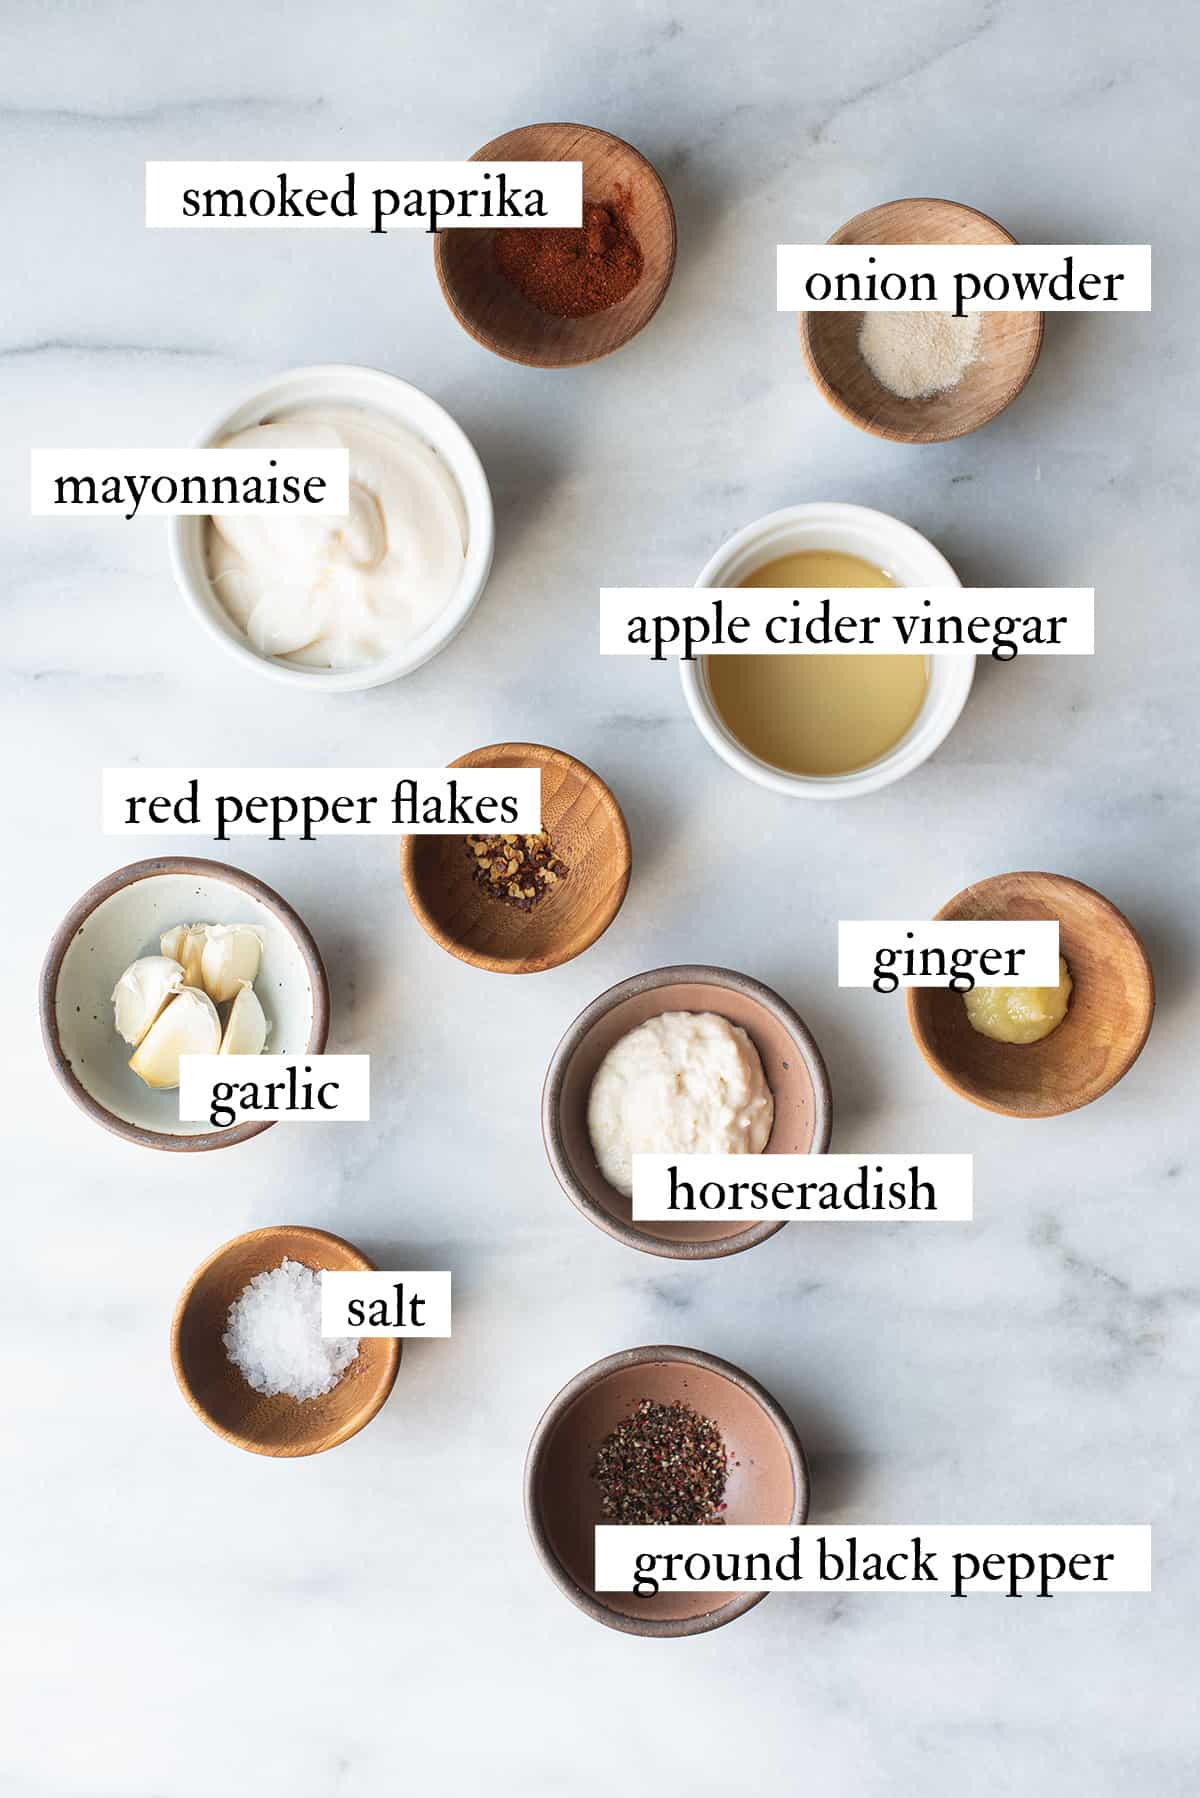 ingredients for white BBQ sauce in bowls on marble surface